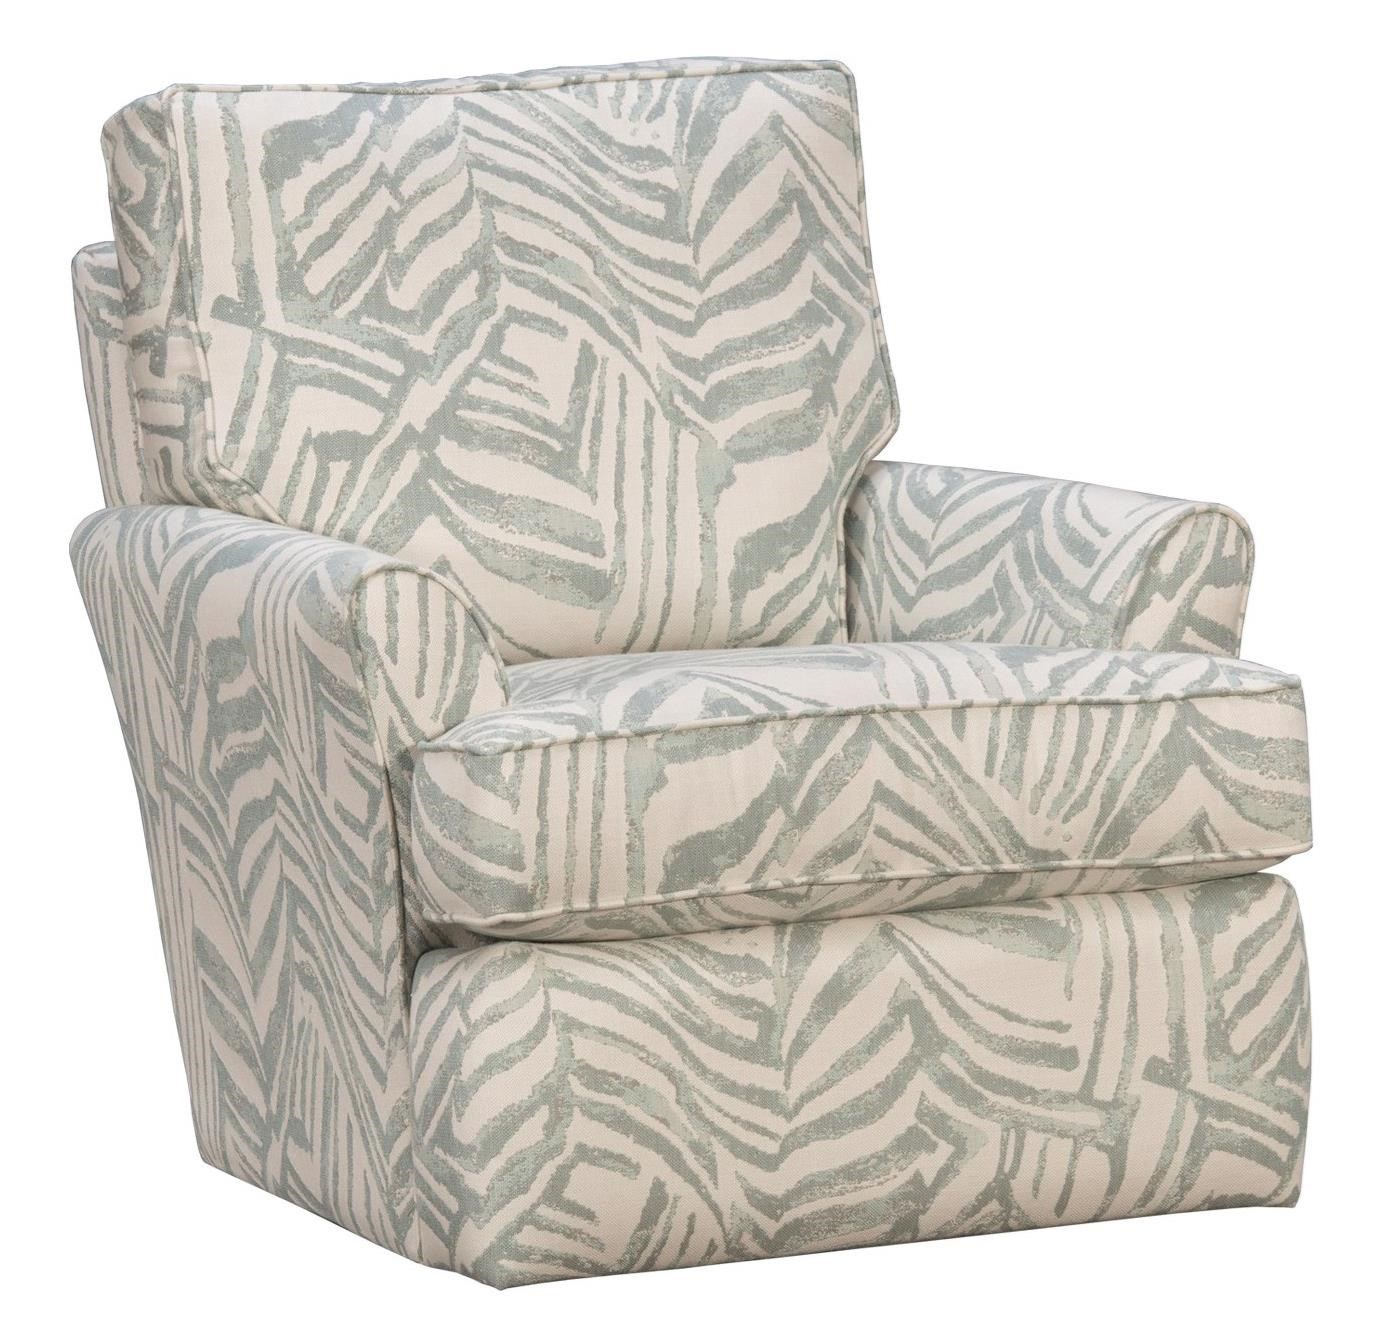 223SG Swivel Glider Chair by Capris Furniture at Esprit Decor Home Furnishings